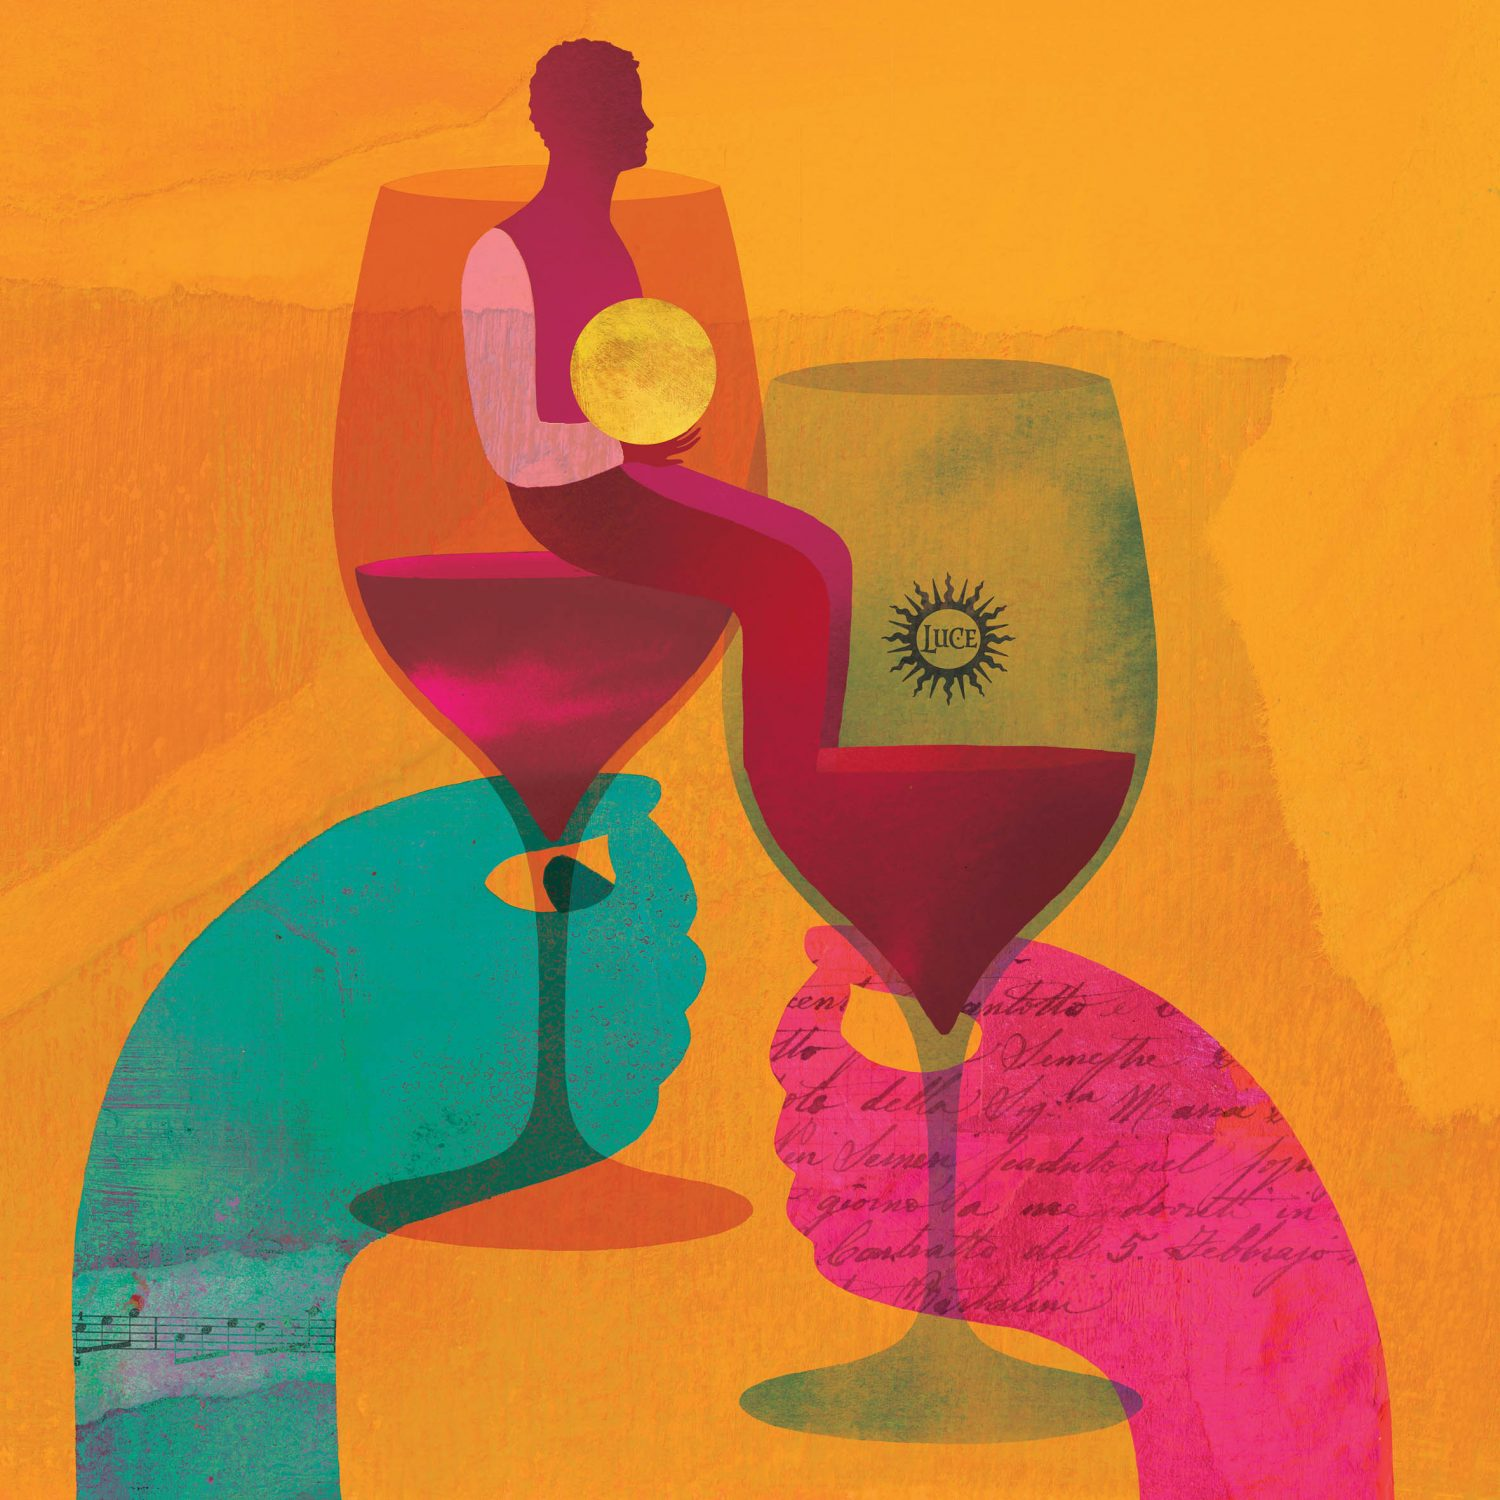 Respect illustration by Anna Godeassi for Tenuta Luce della Vita